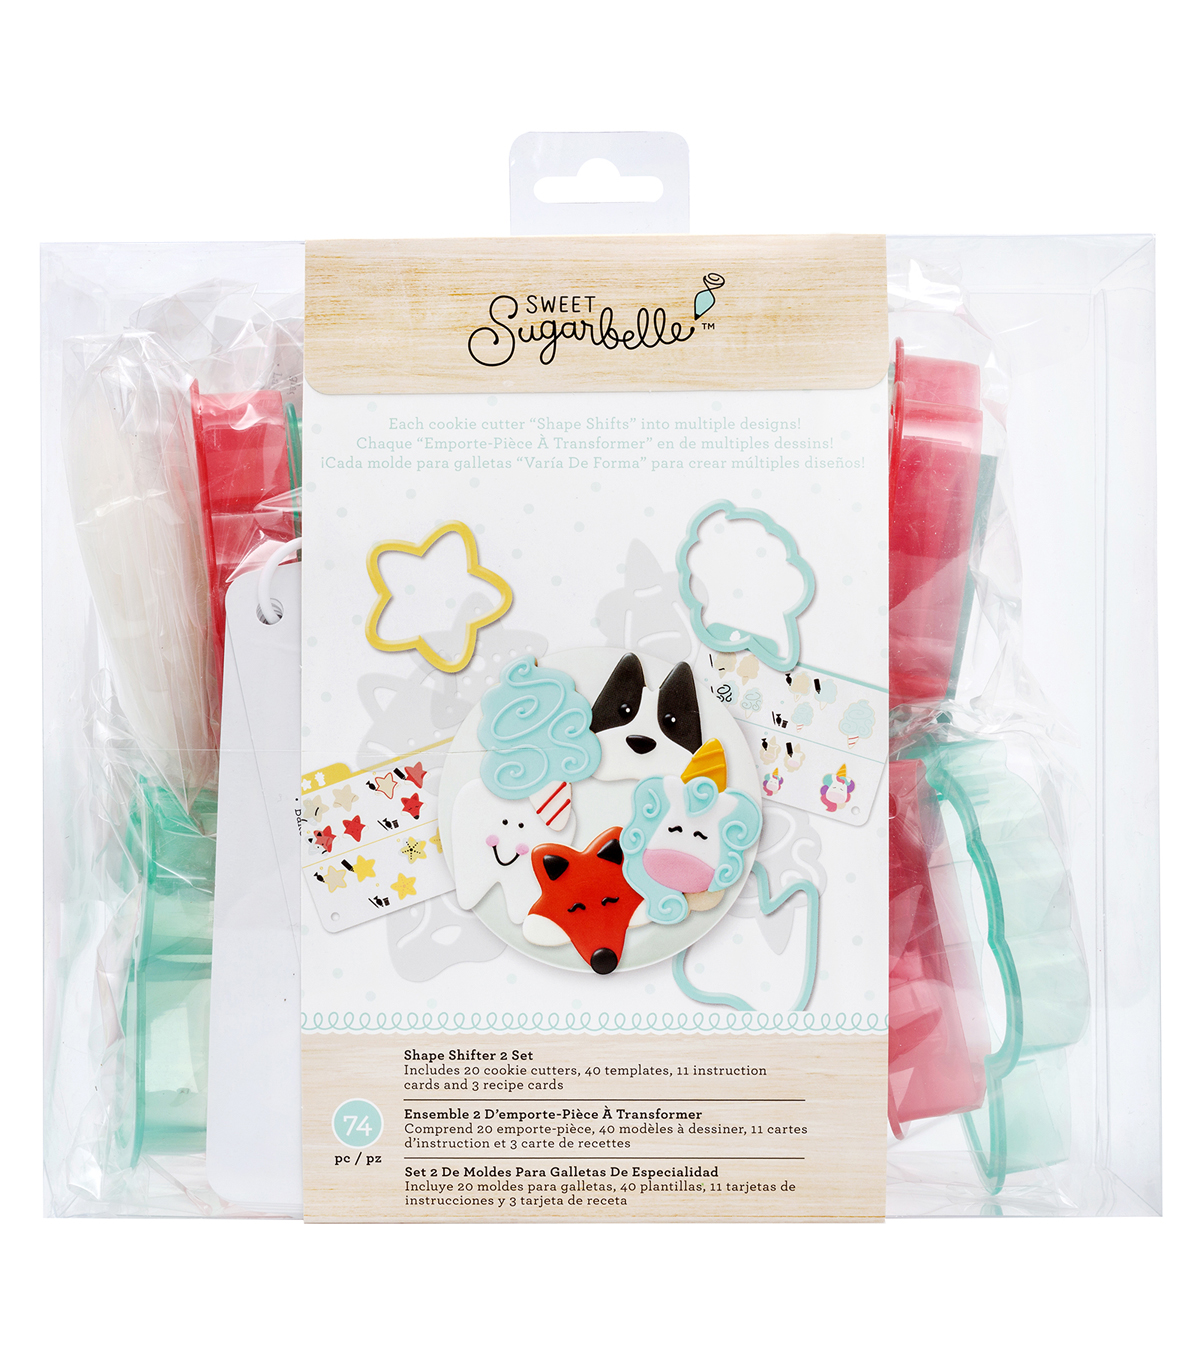 Sweet Sugarbelle Spring Shape Shifter 2 Cookie Cutter Set